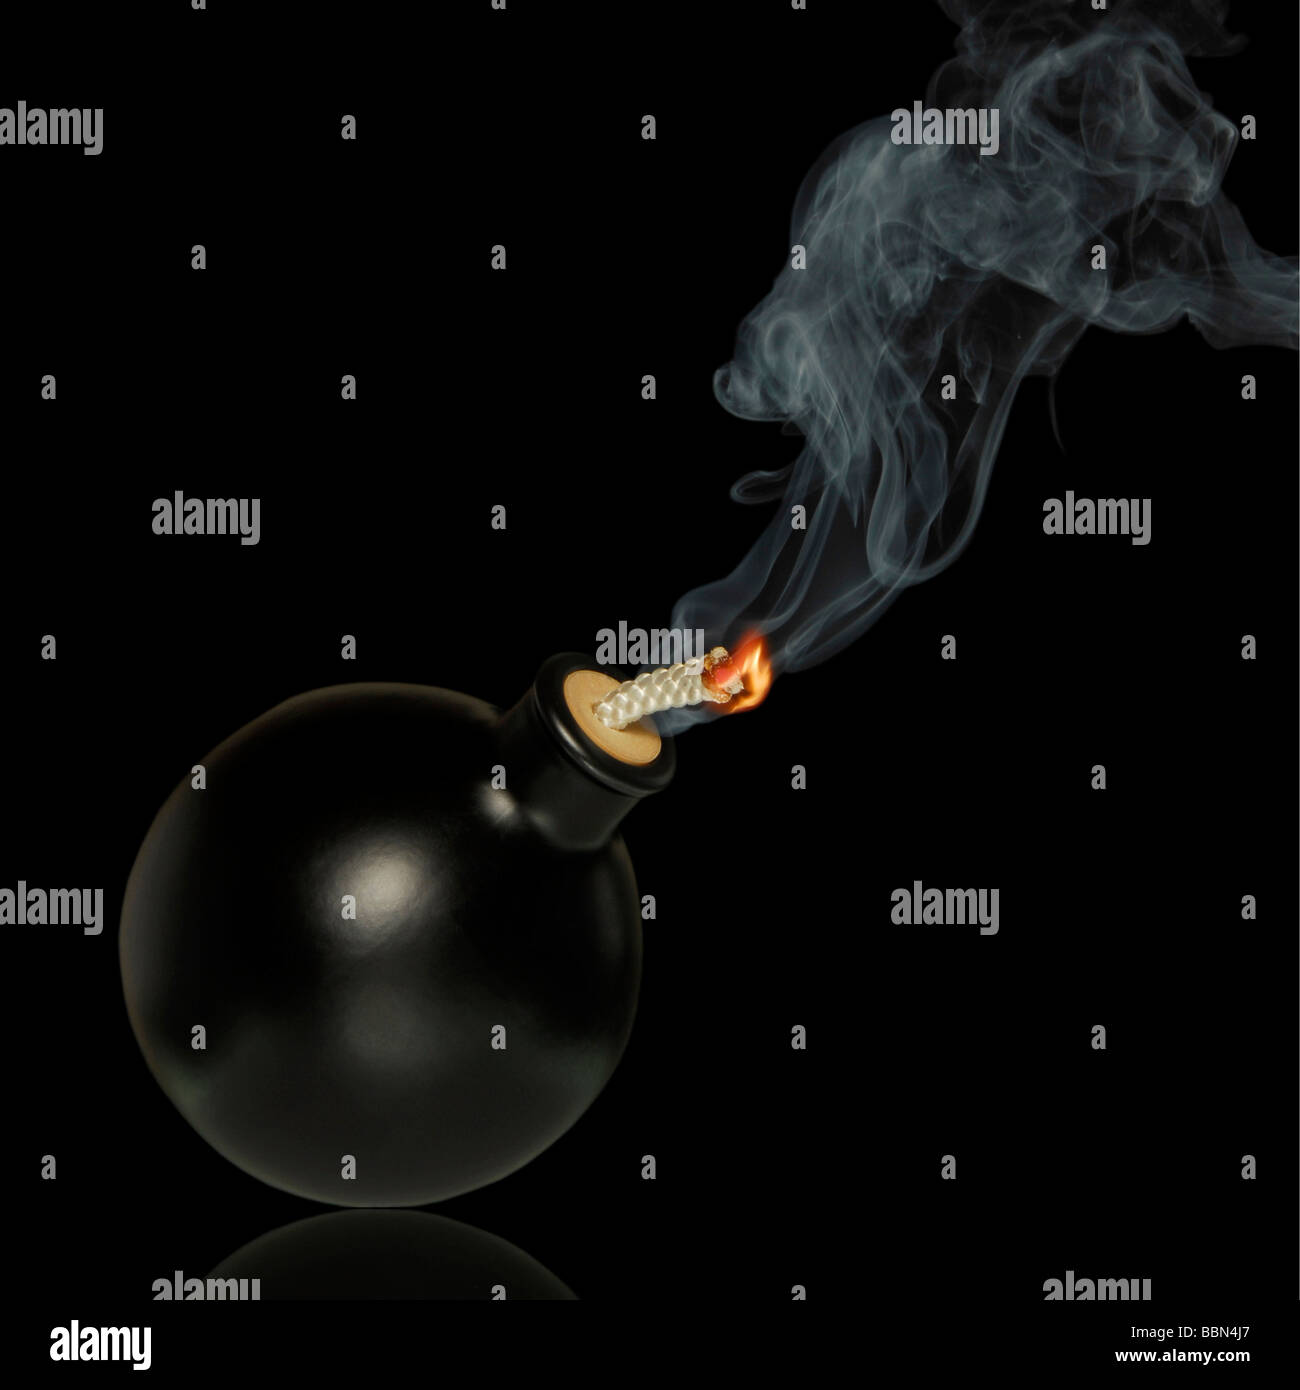 Black bomb on black, fuse is burning, symbolic symbol for danger, let the bomb explode - Stock Image